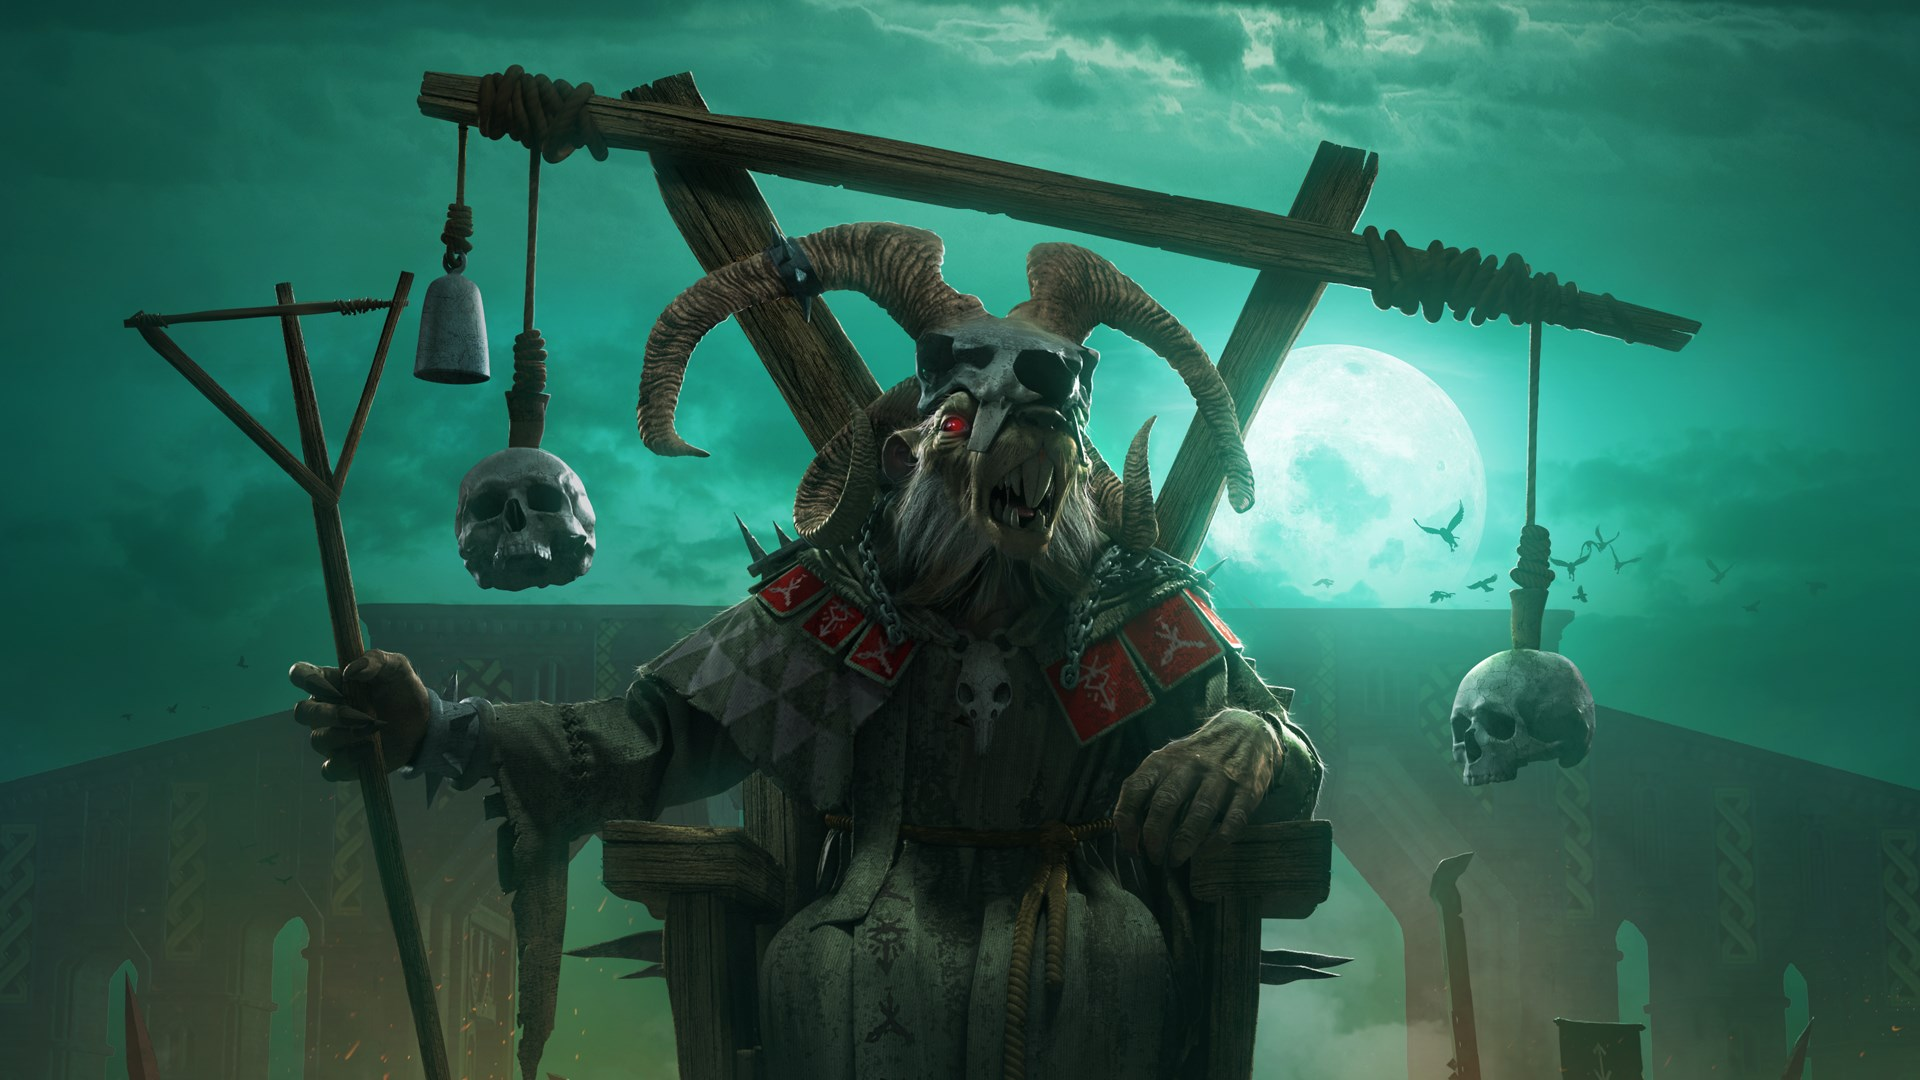 Buy Warhammer: End Times - Vermintide - Collector's Edition